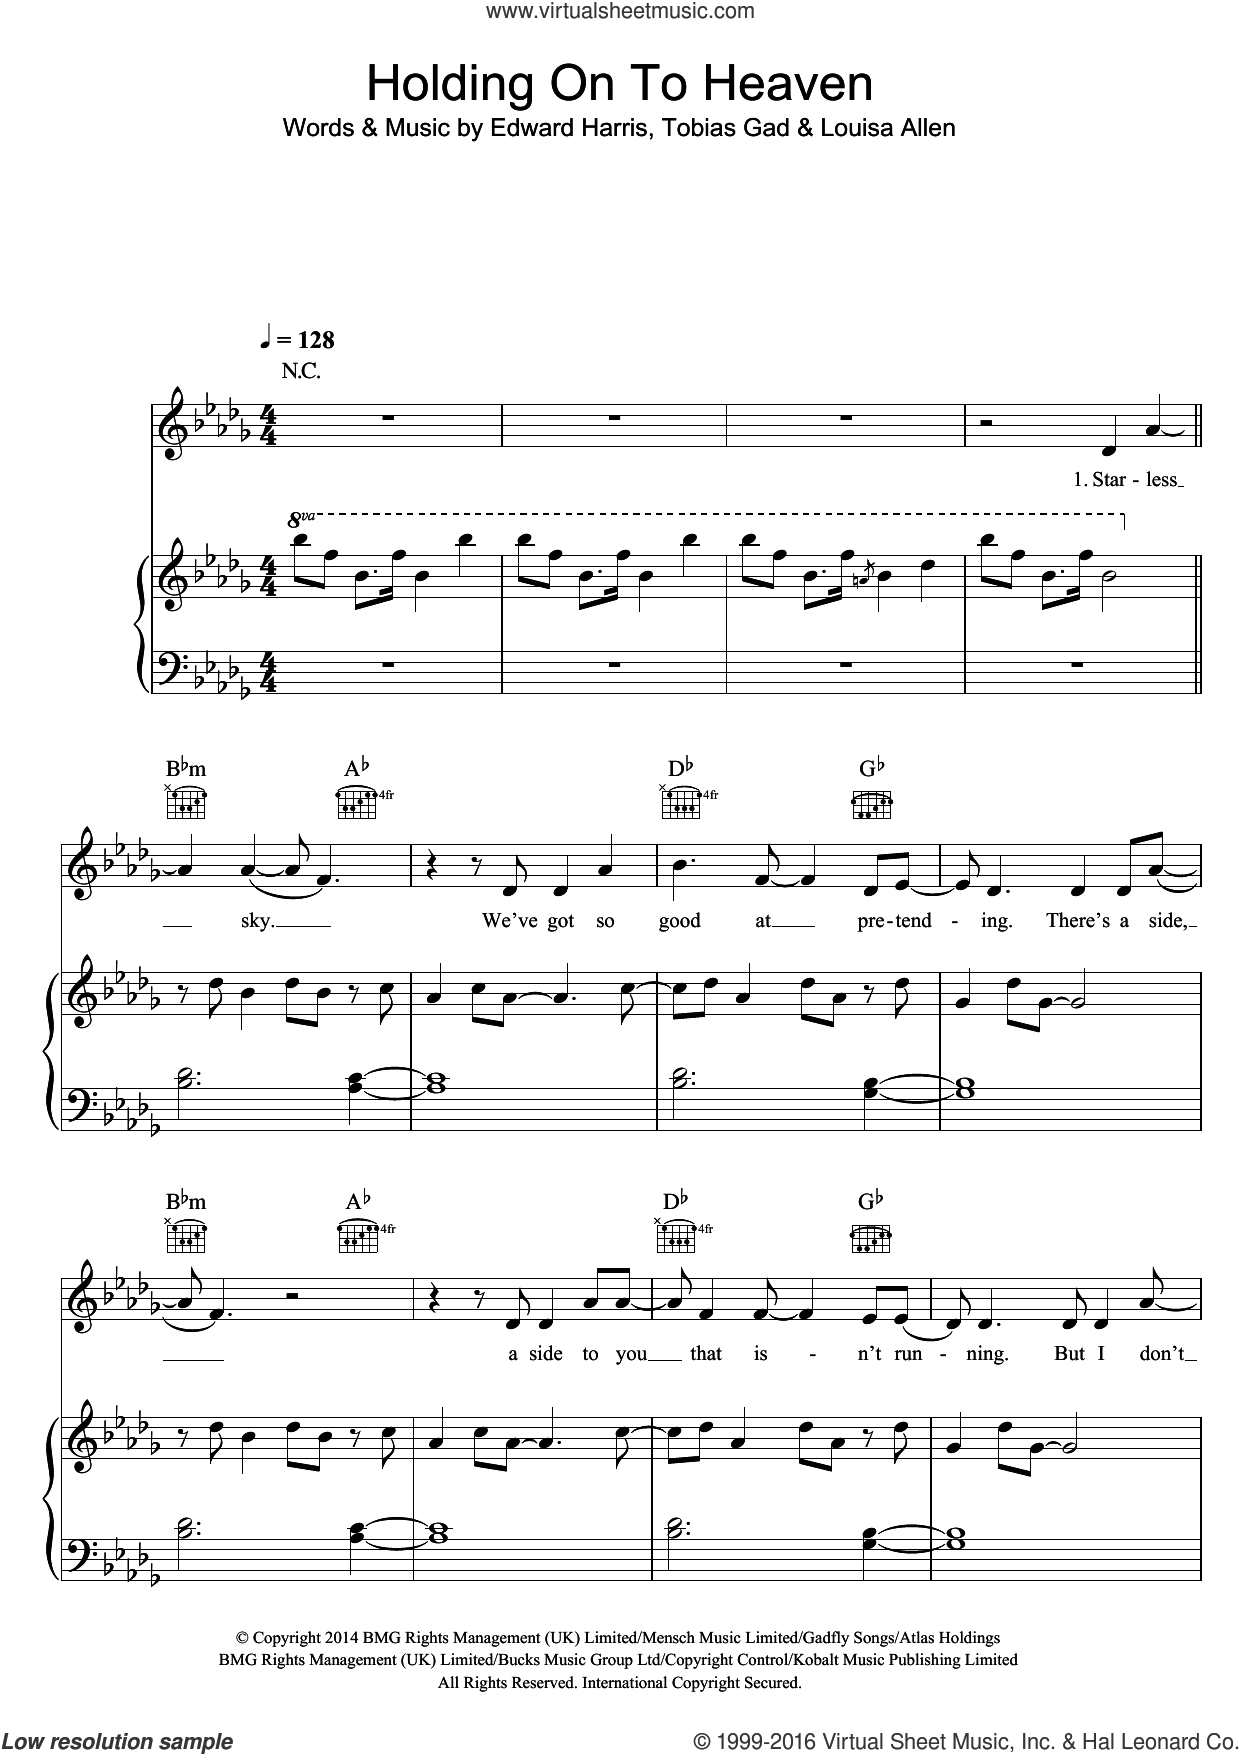 Holding Onto Heaven sheet music for voice, piano or guitar by Foxes, Eddie Harris, Louisa Allen and Toby Gad, intermediate skill level